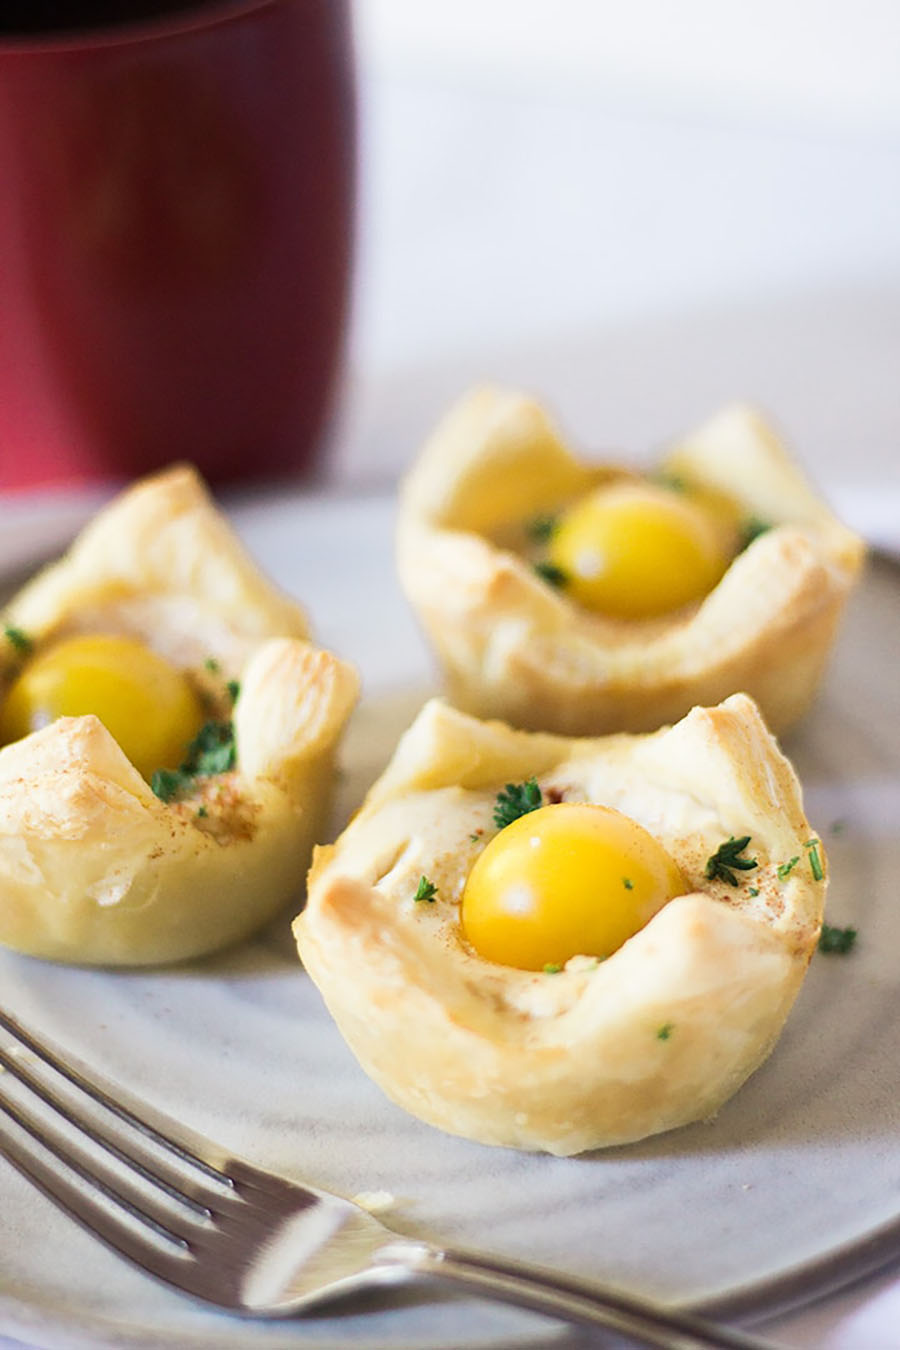 A plate of three vegan egg cups sitting on a table with a fork leaned upon the plate.